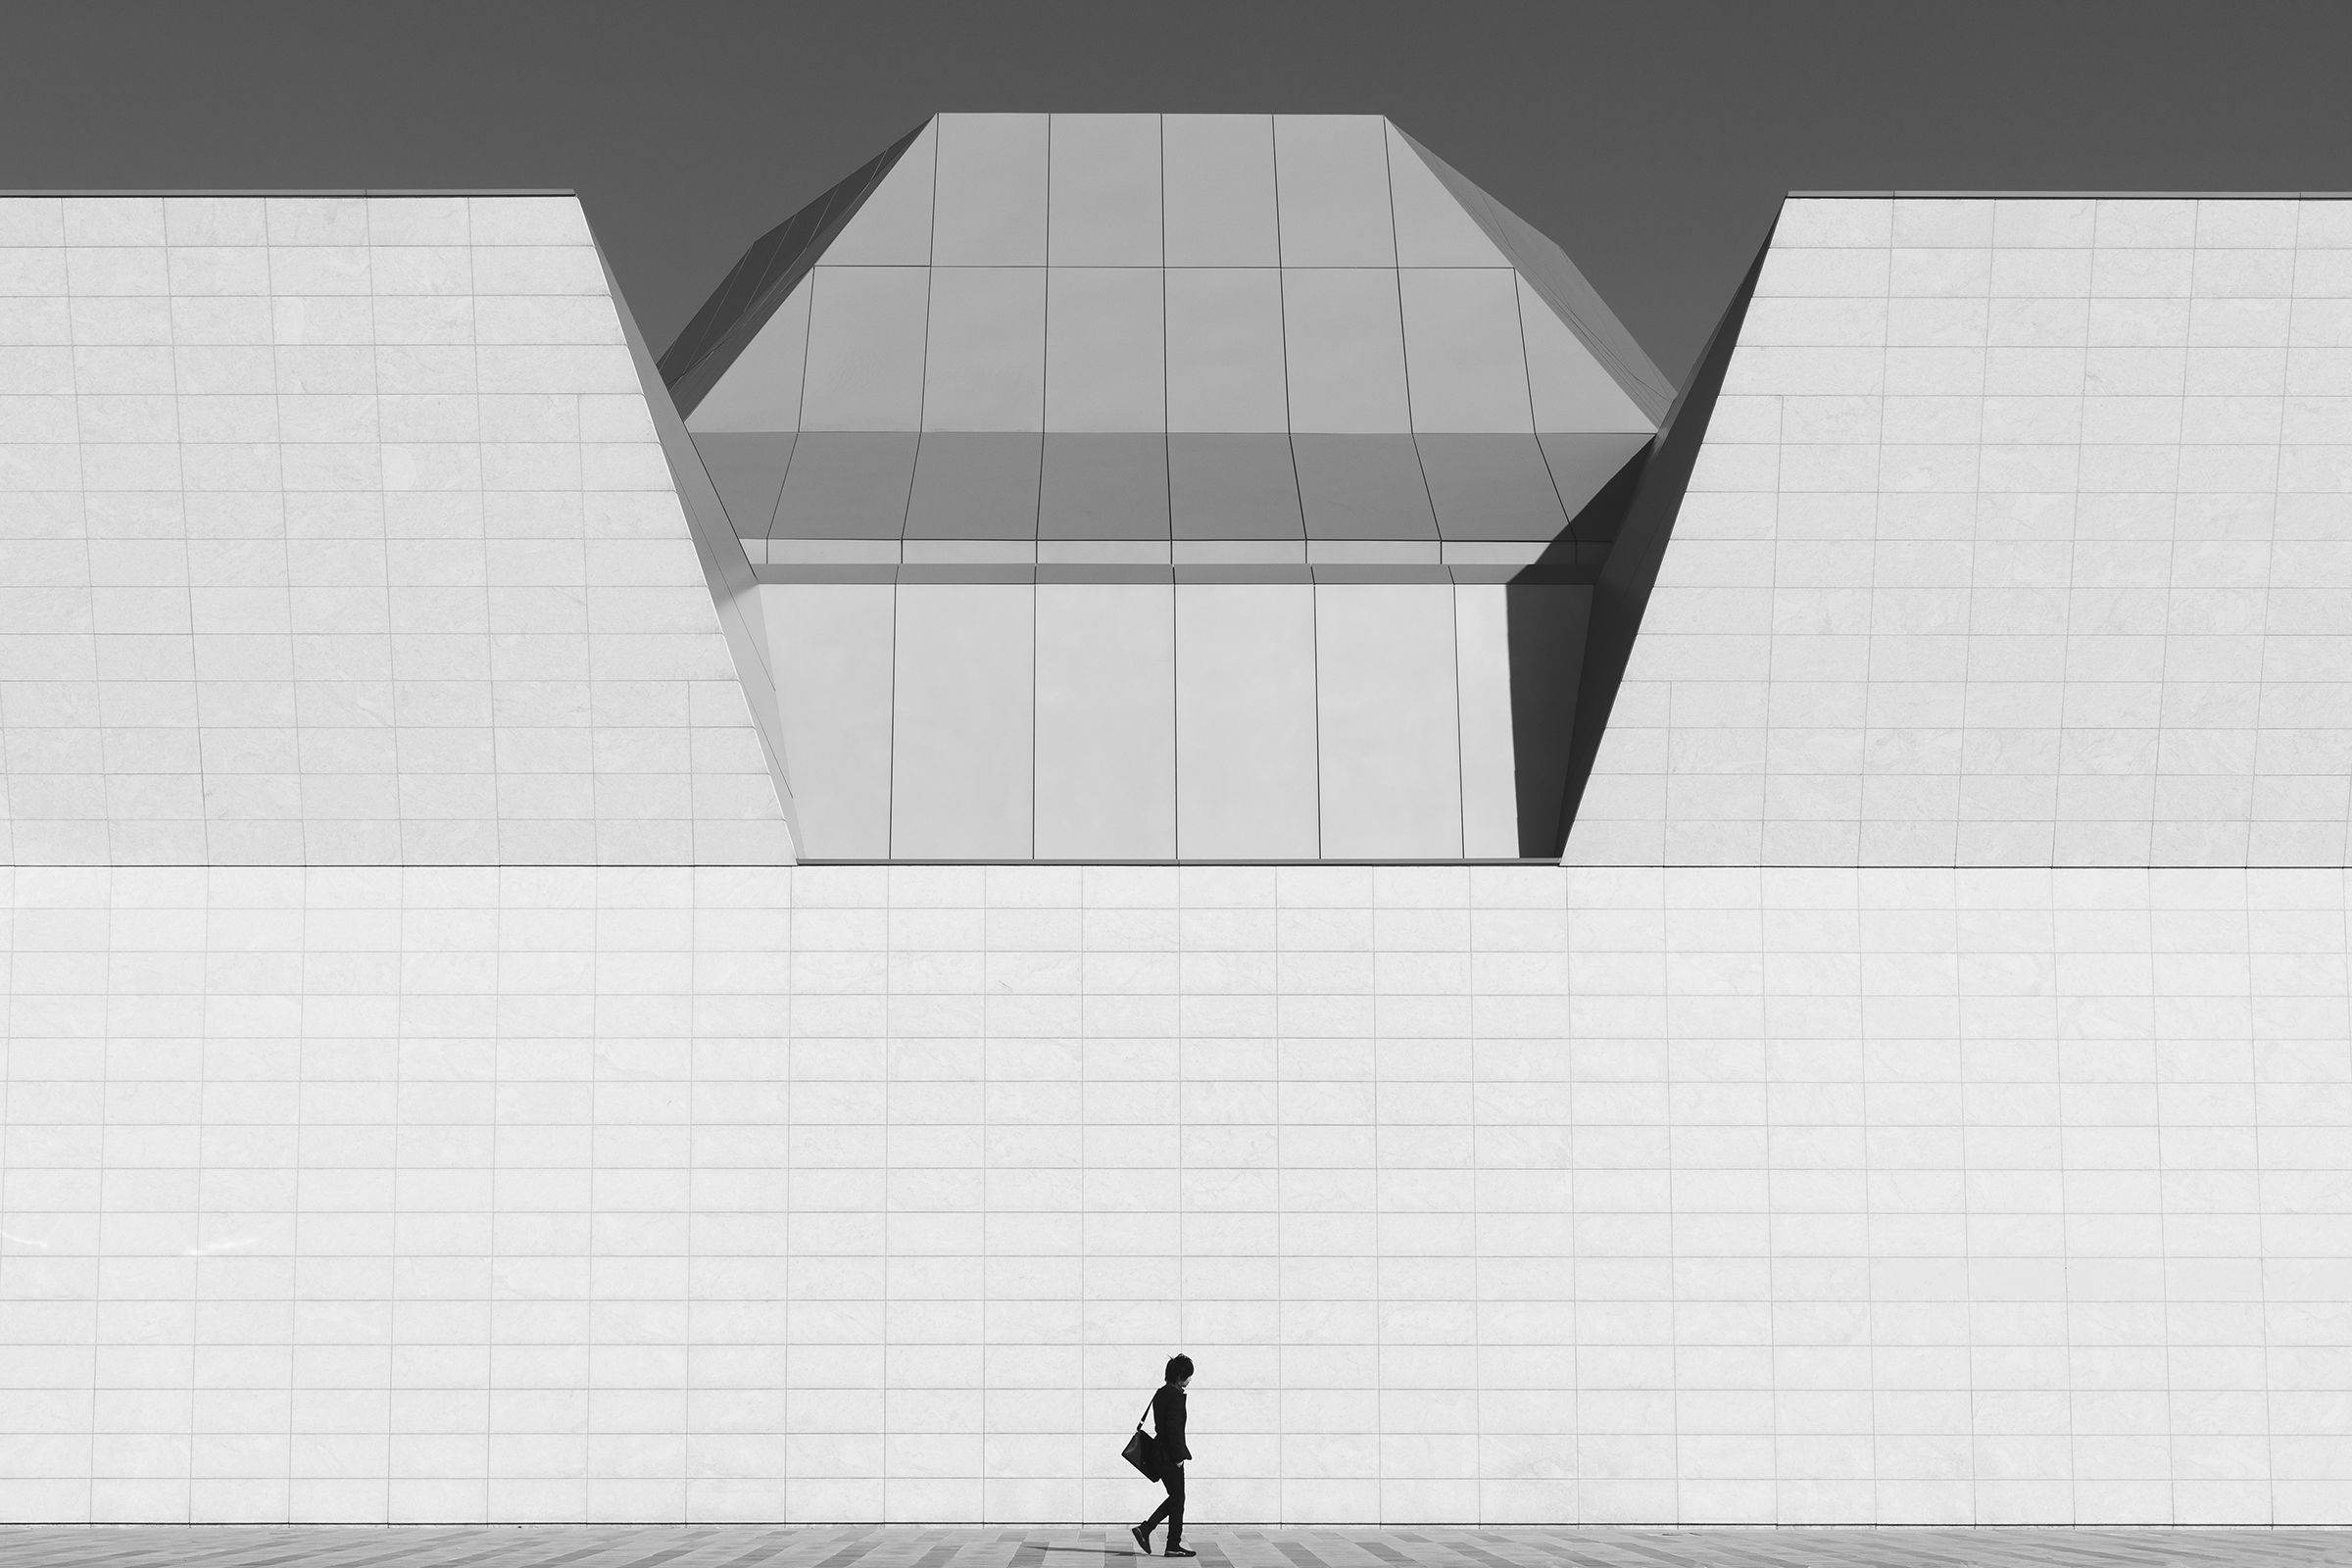 Ethar Ismail, Between the Lines, 2020